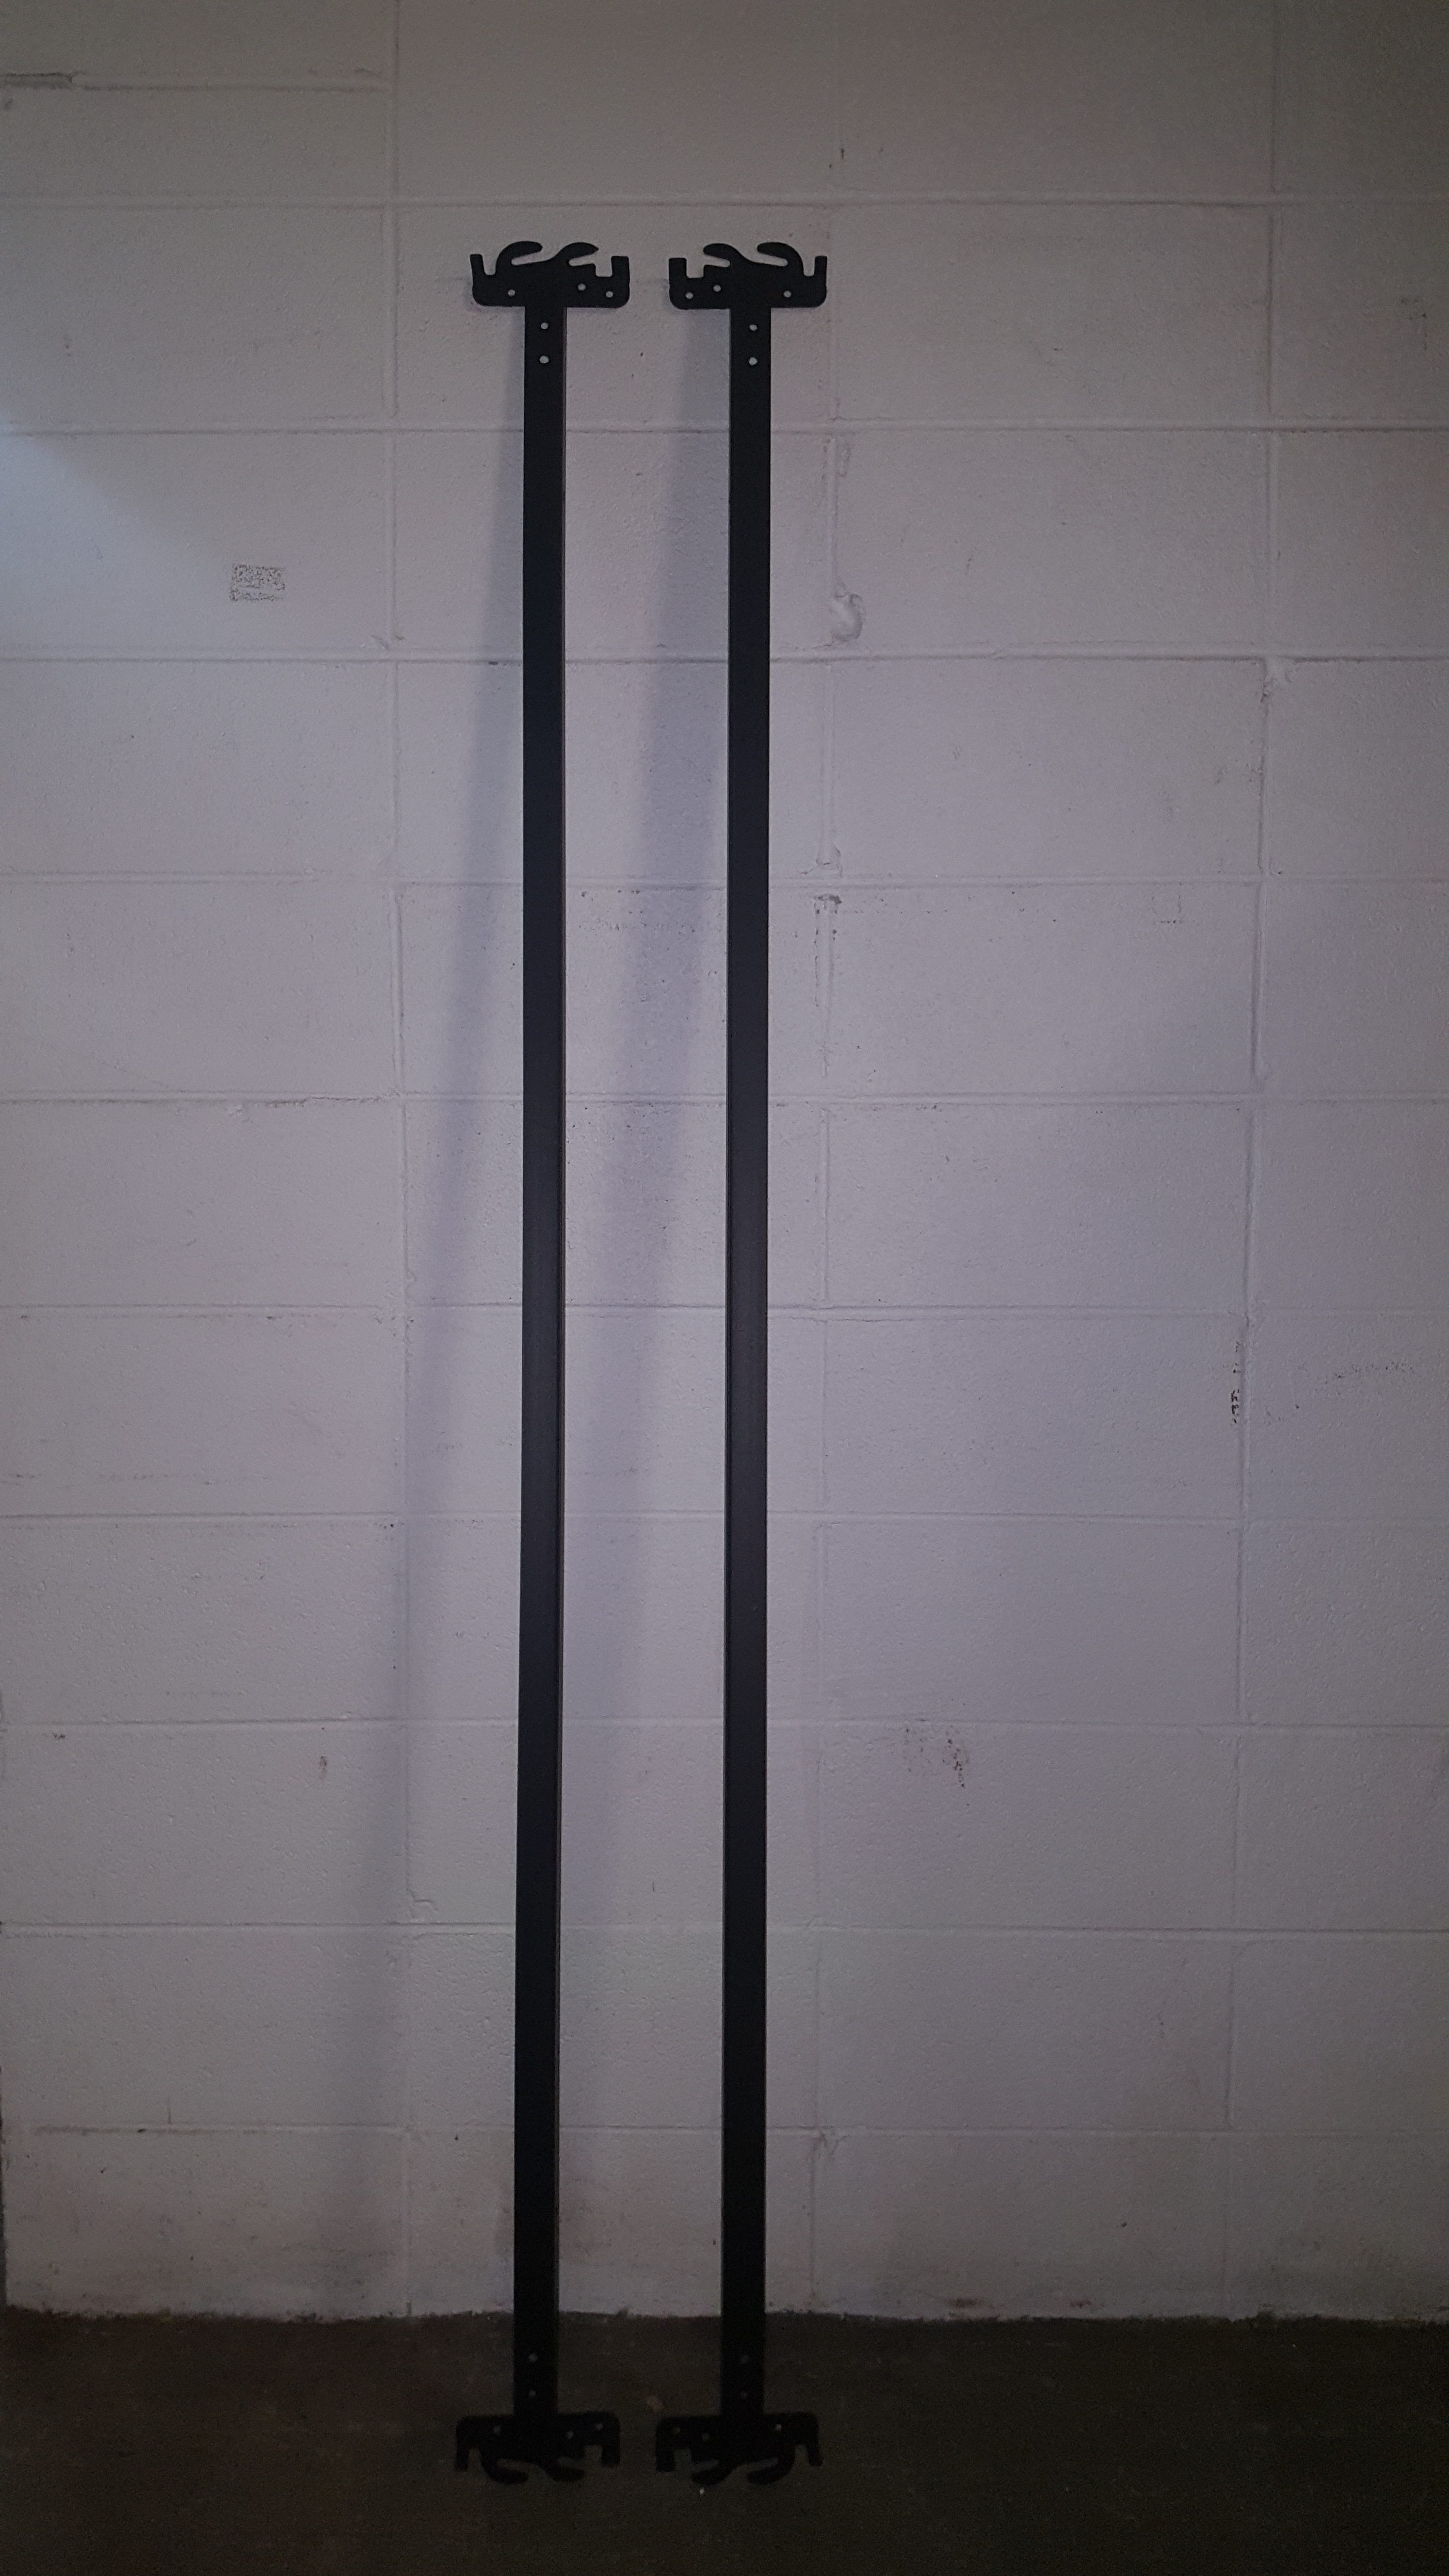 Twin Full Hook On Style Hb Fb Bed Rails A J Sales Online